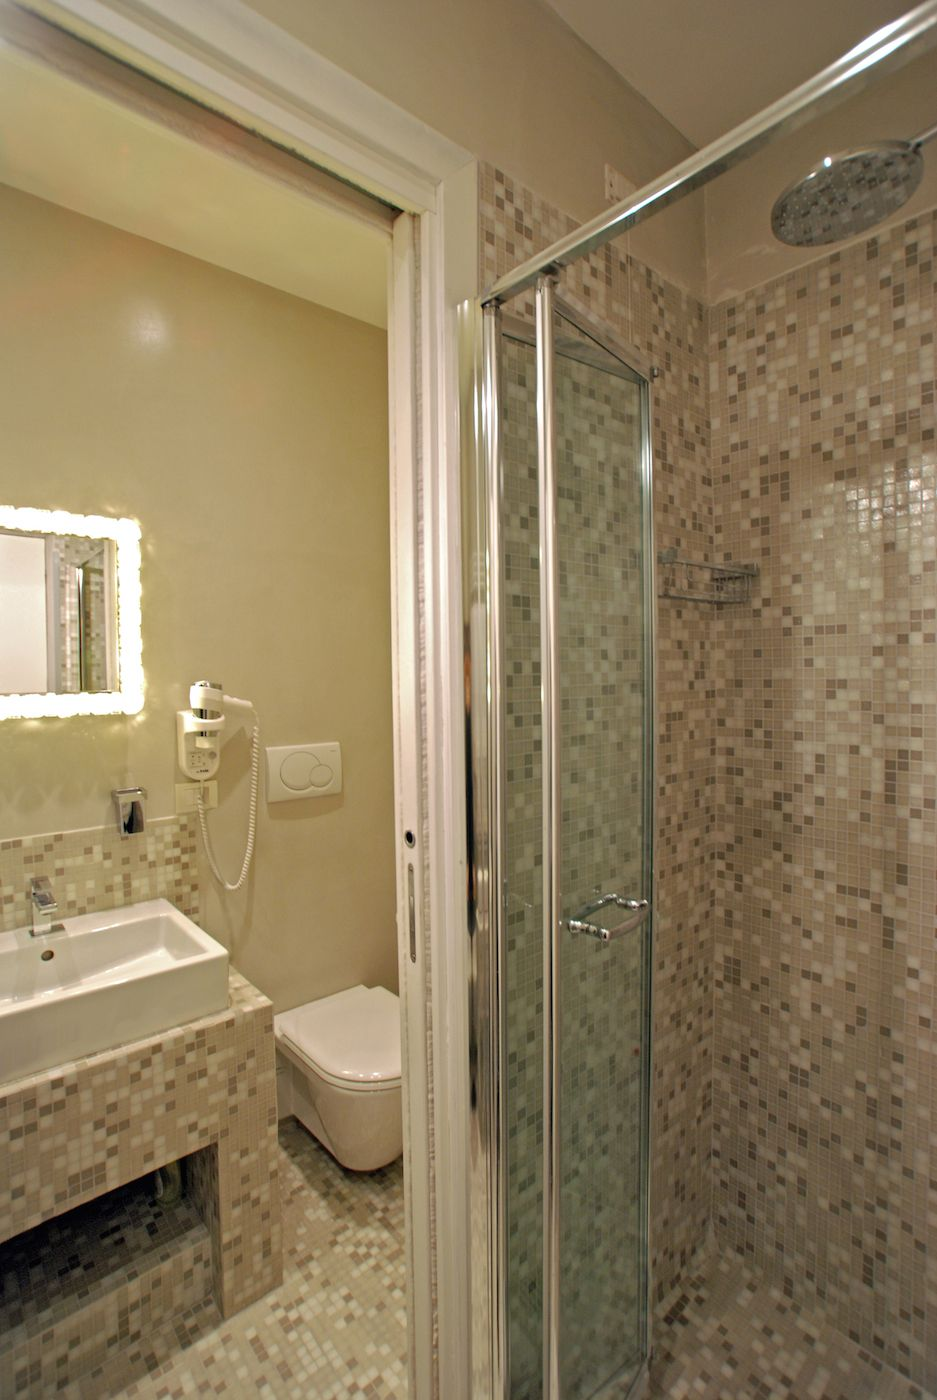 Leonina second bathroom with shower